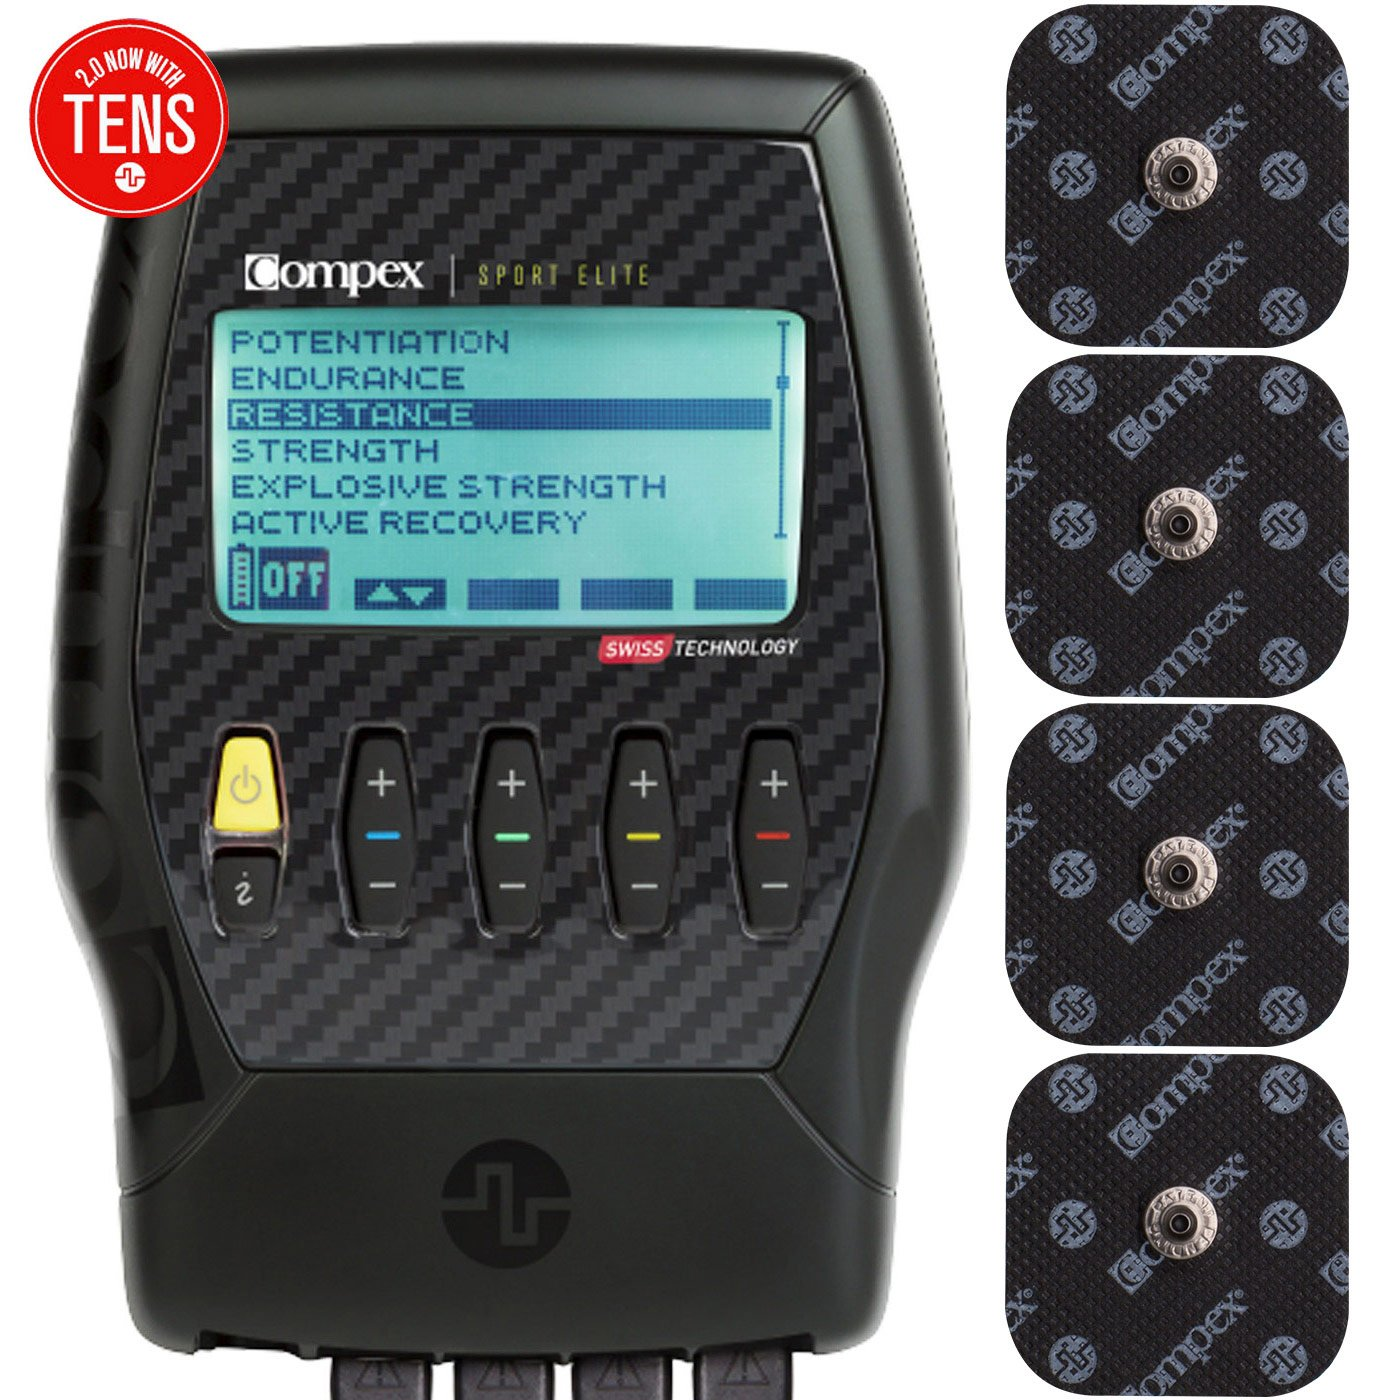 Compex Sport Elite 2.0 Muscle Stimulator With Tens Bundle Kit: Muscle Stim, 12 Snap Electrodes, 10 Programs, Lead Wires, Battery, Case / 4 Strength, 2 Warm Up,... by Compex